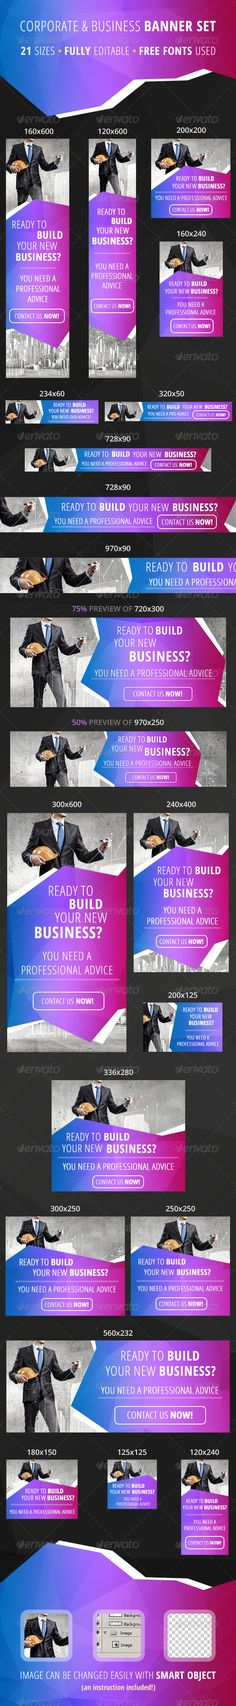 21 Corporate Web Ad Banners - Banners & Ads Web Elements